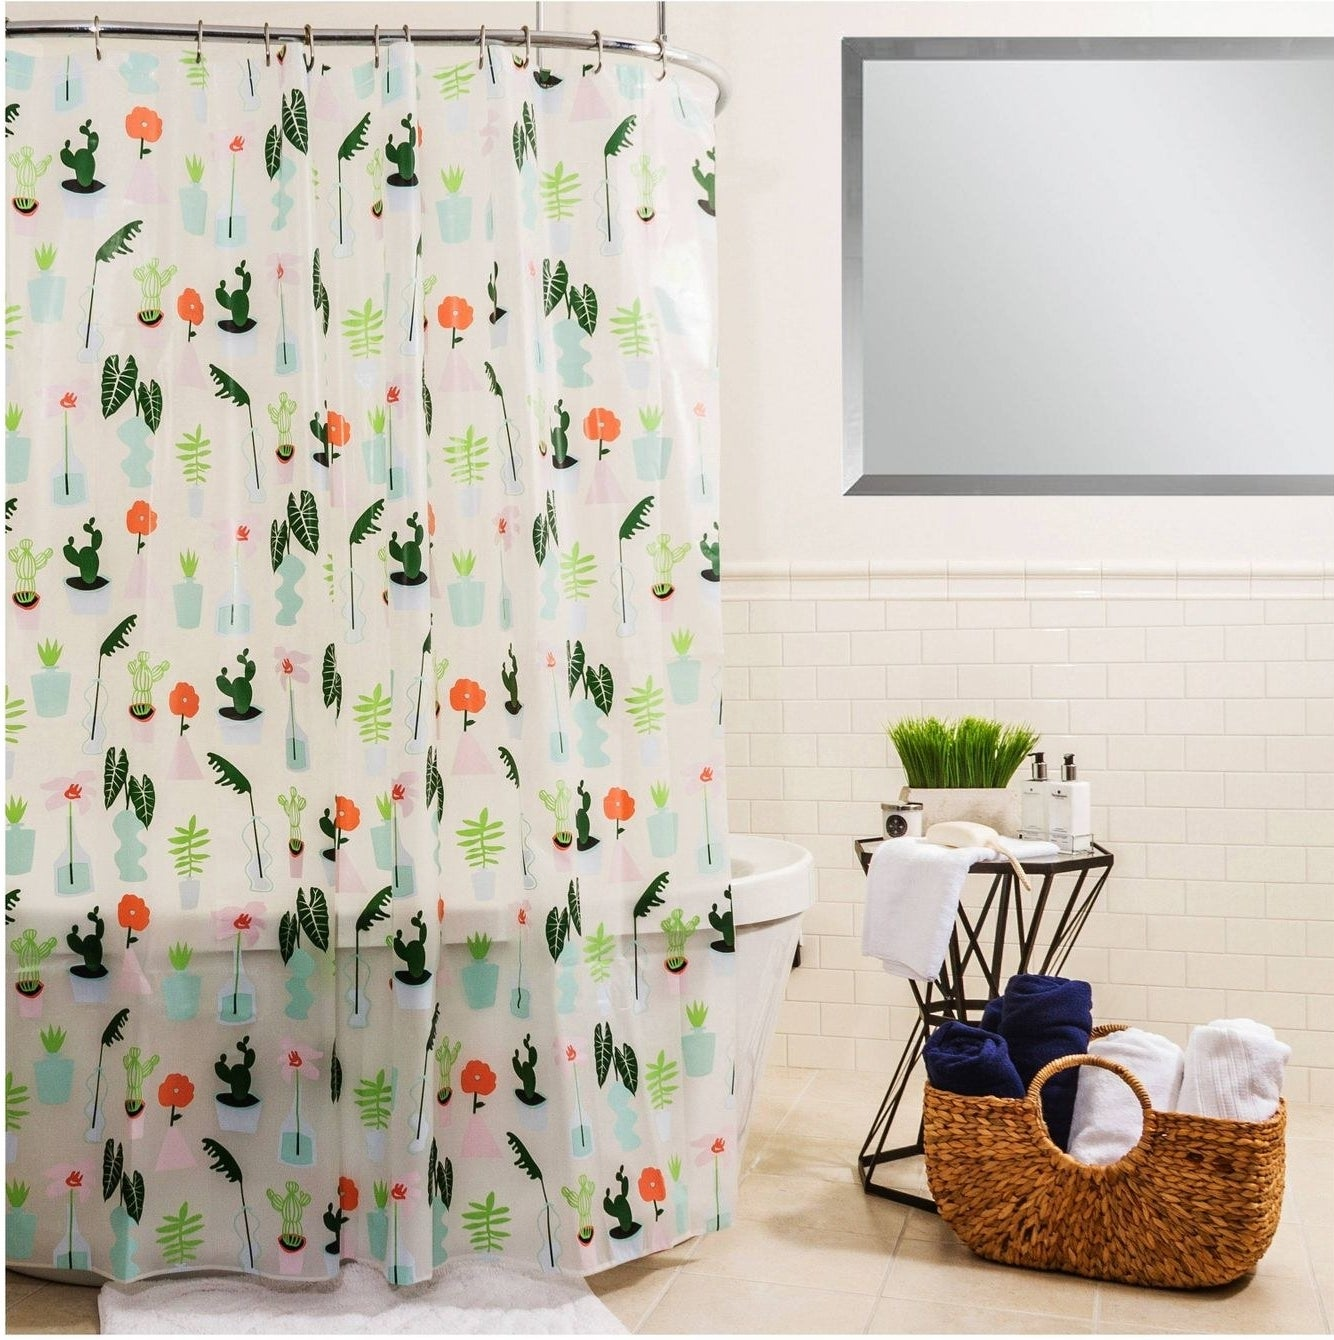 plastic shower curtain with plants print hanging above a bathtub in a bathroom